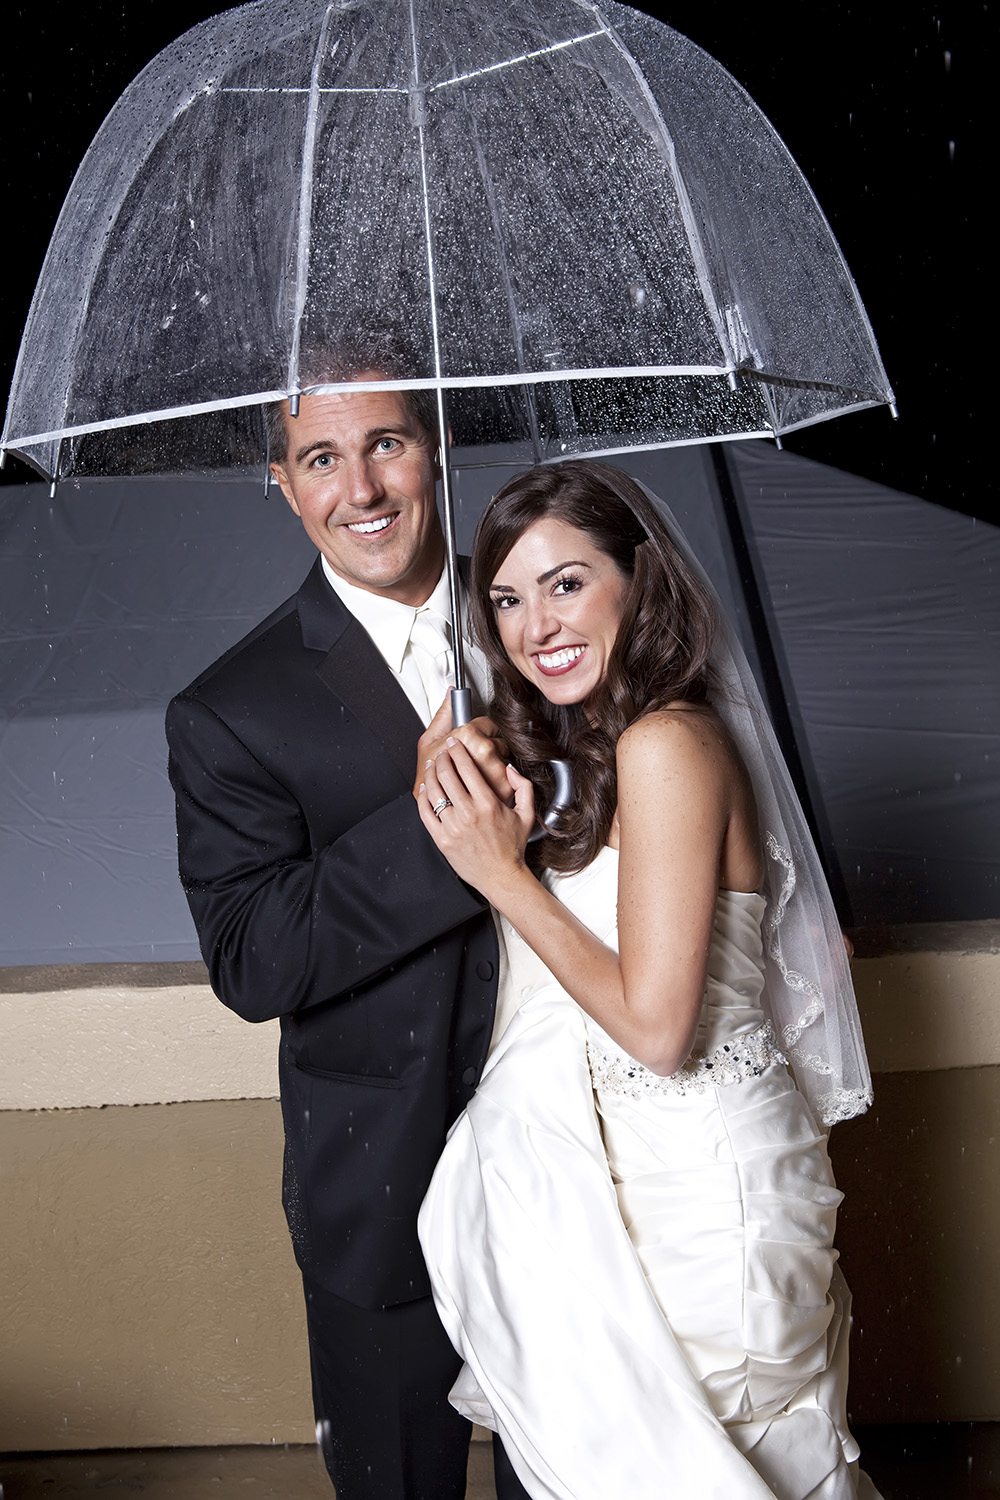 Stormy day happy wedding couple